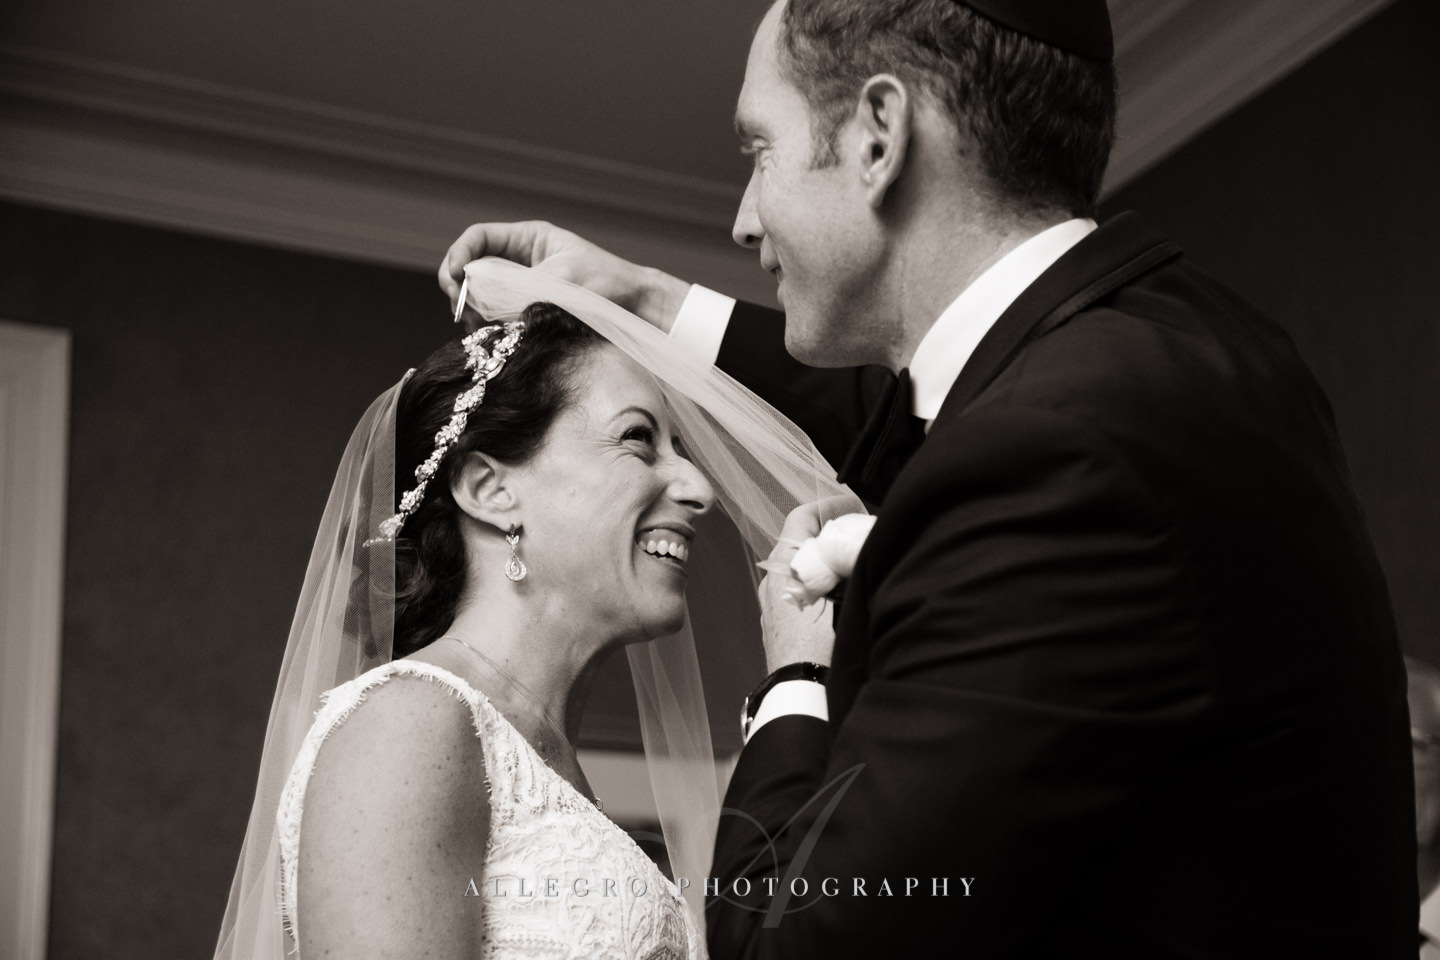 bedecken - putting on the veil jewish tradition -photo by Allegro Photography